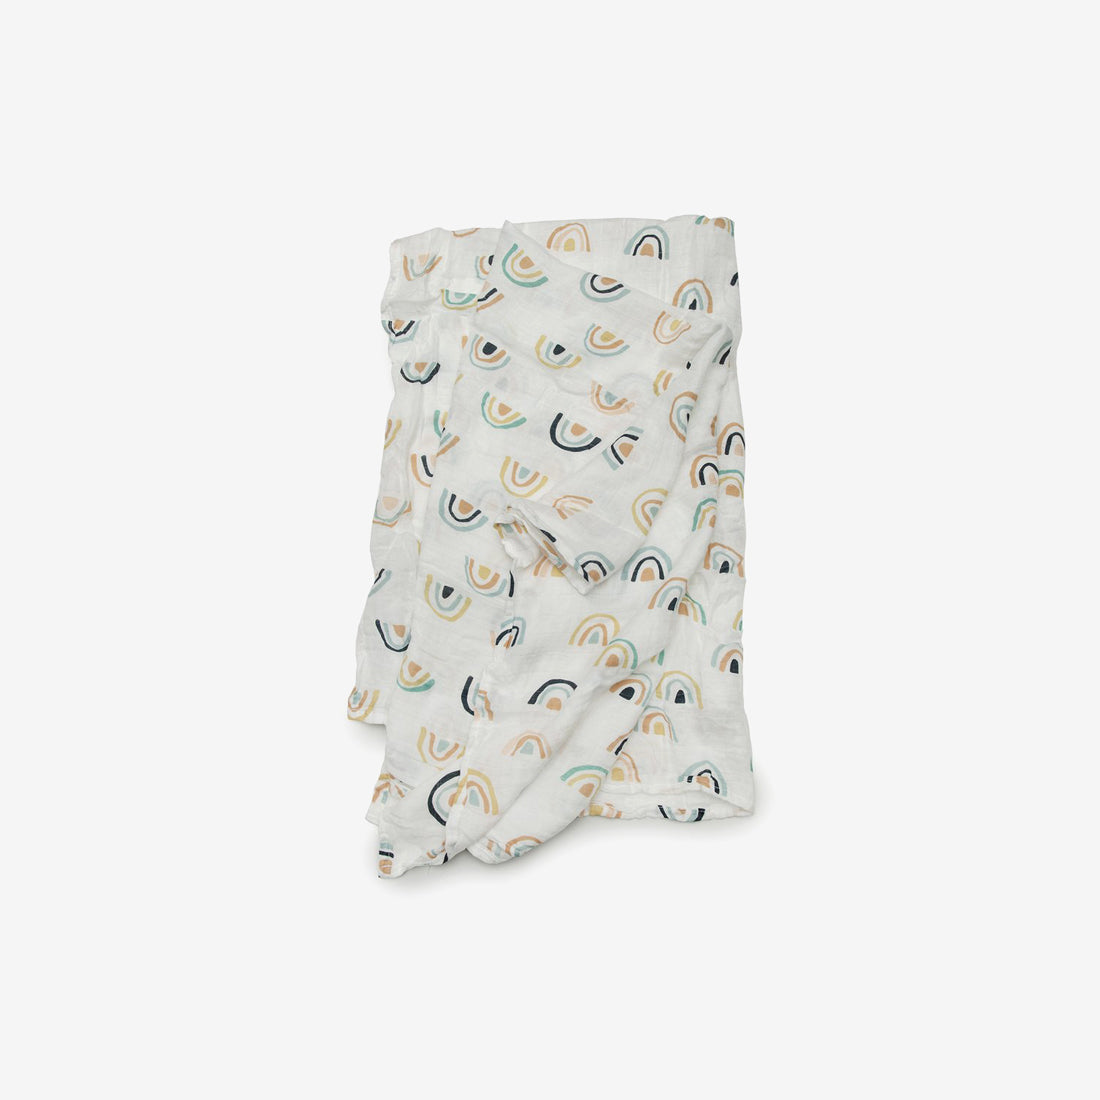 Bamboo/Cotton Muslin Swaddle - Neutral Rainbow